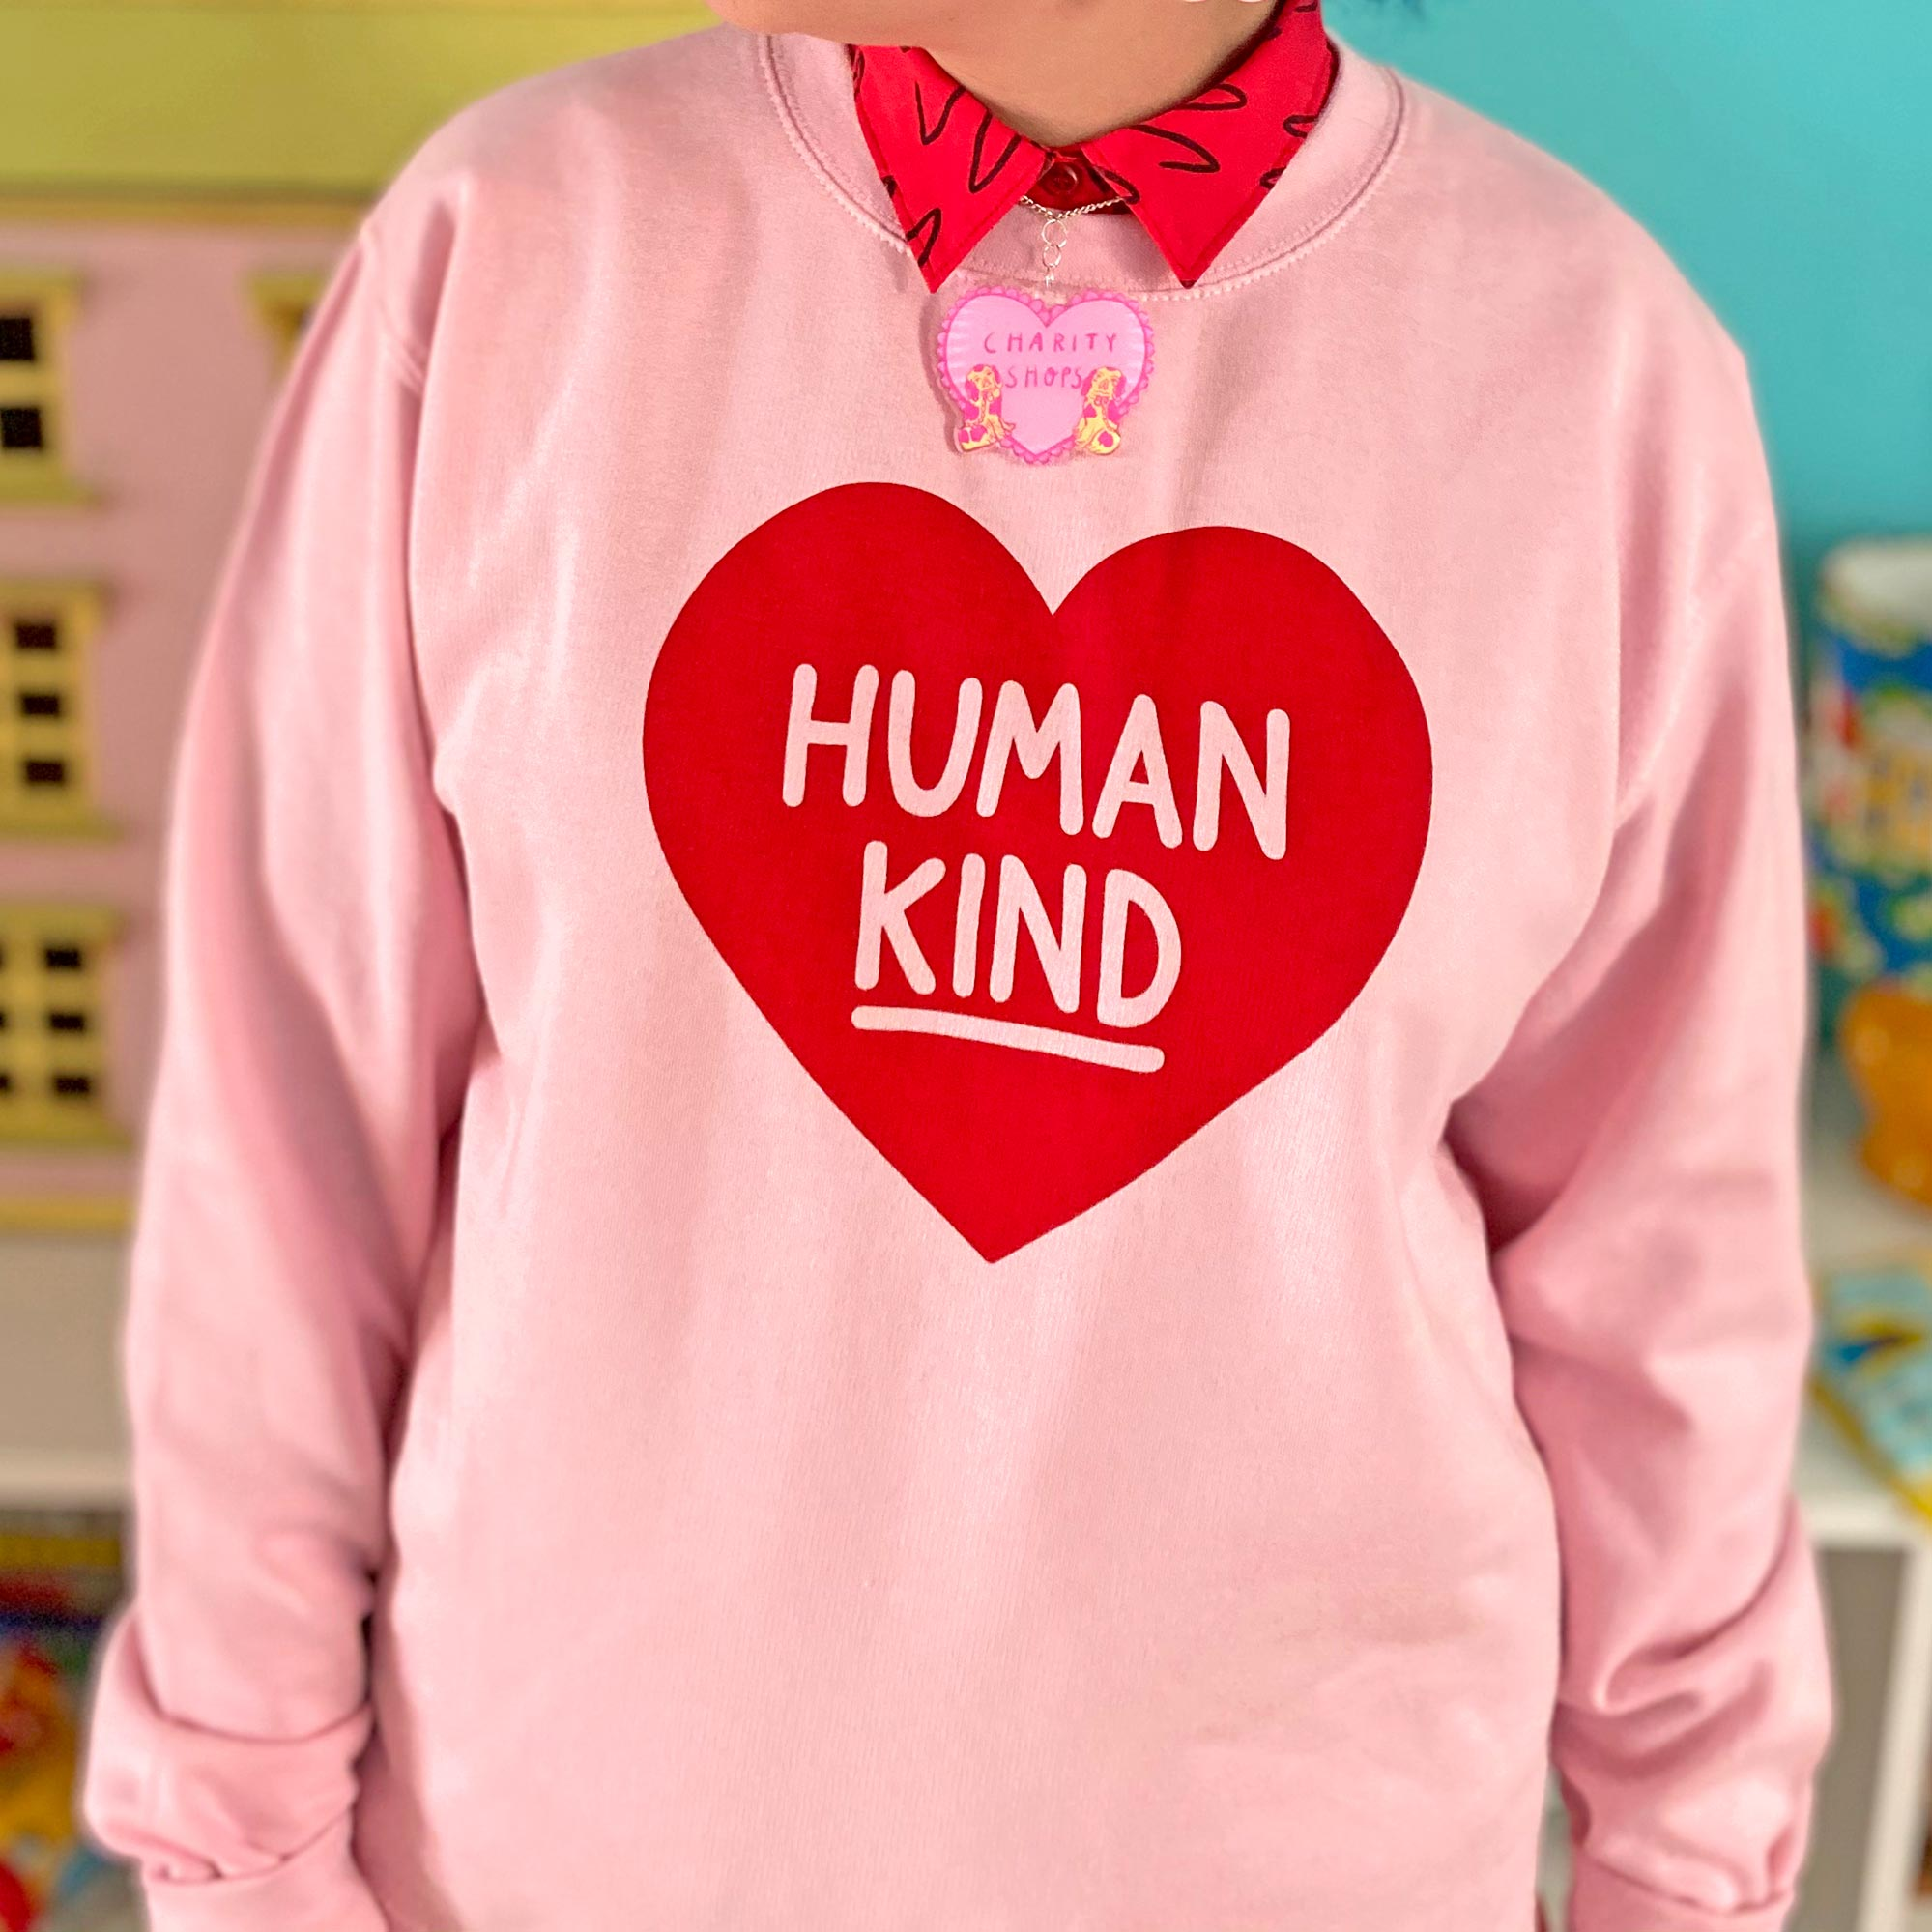 Human Kind Large Print Unisex Sweatshirt